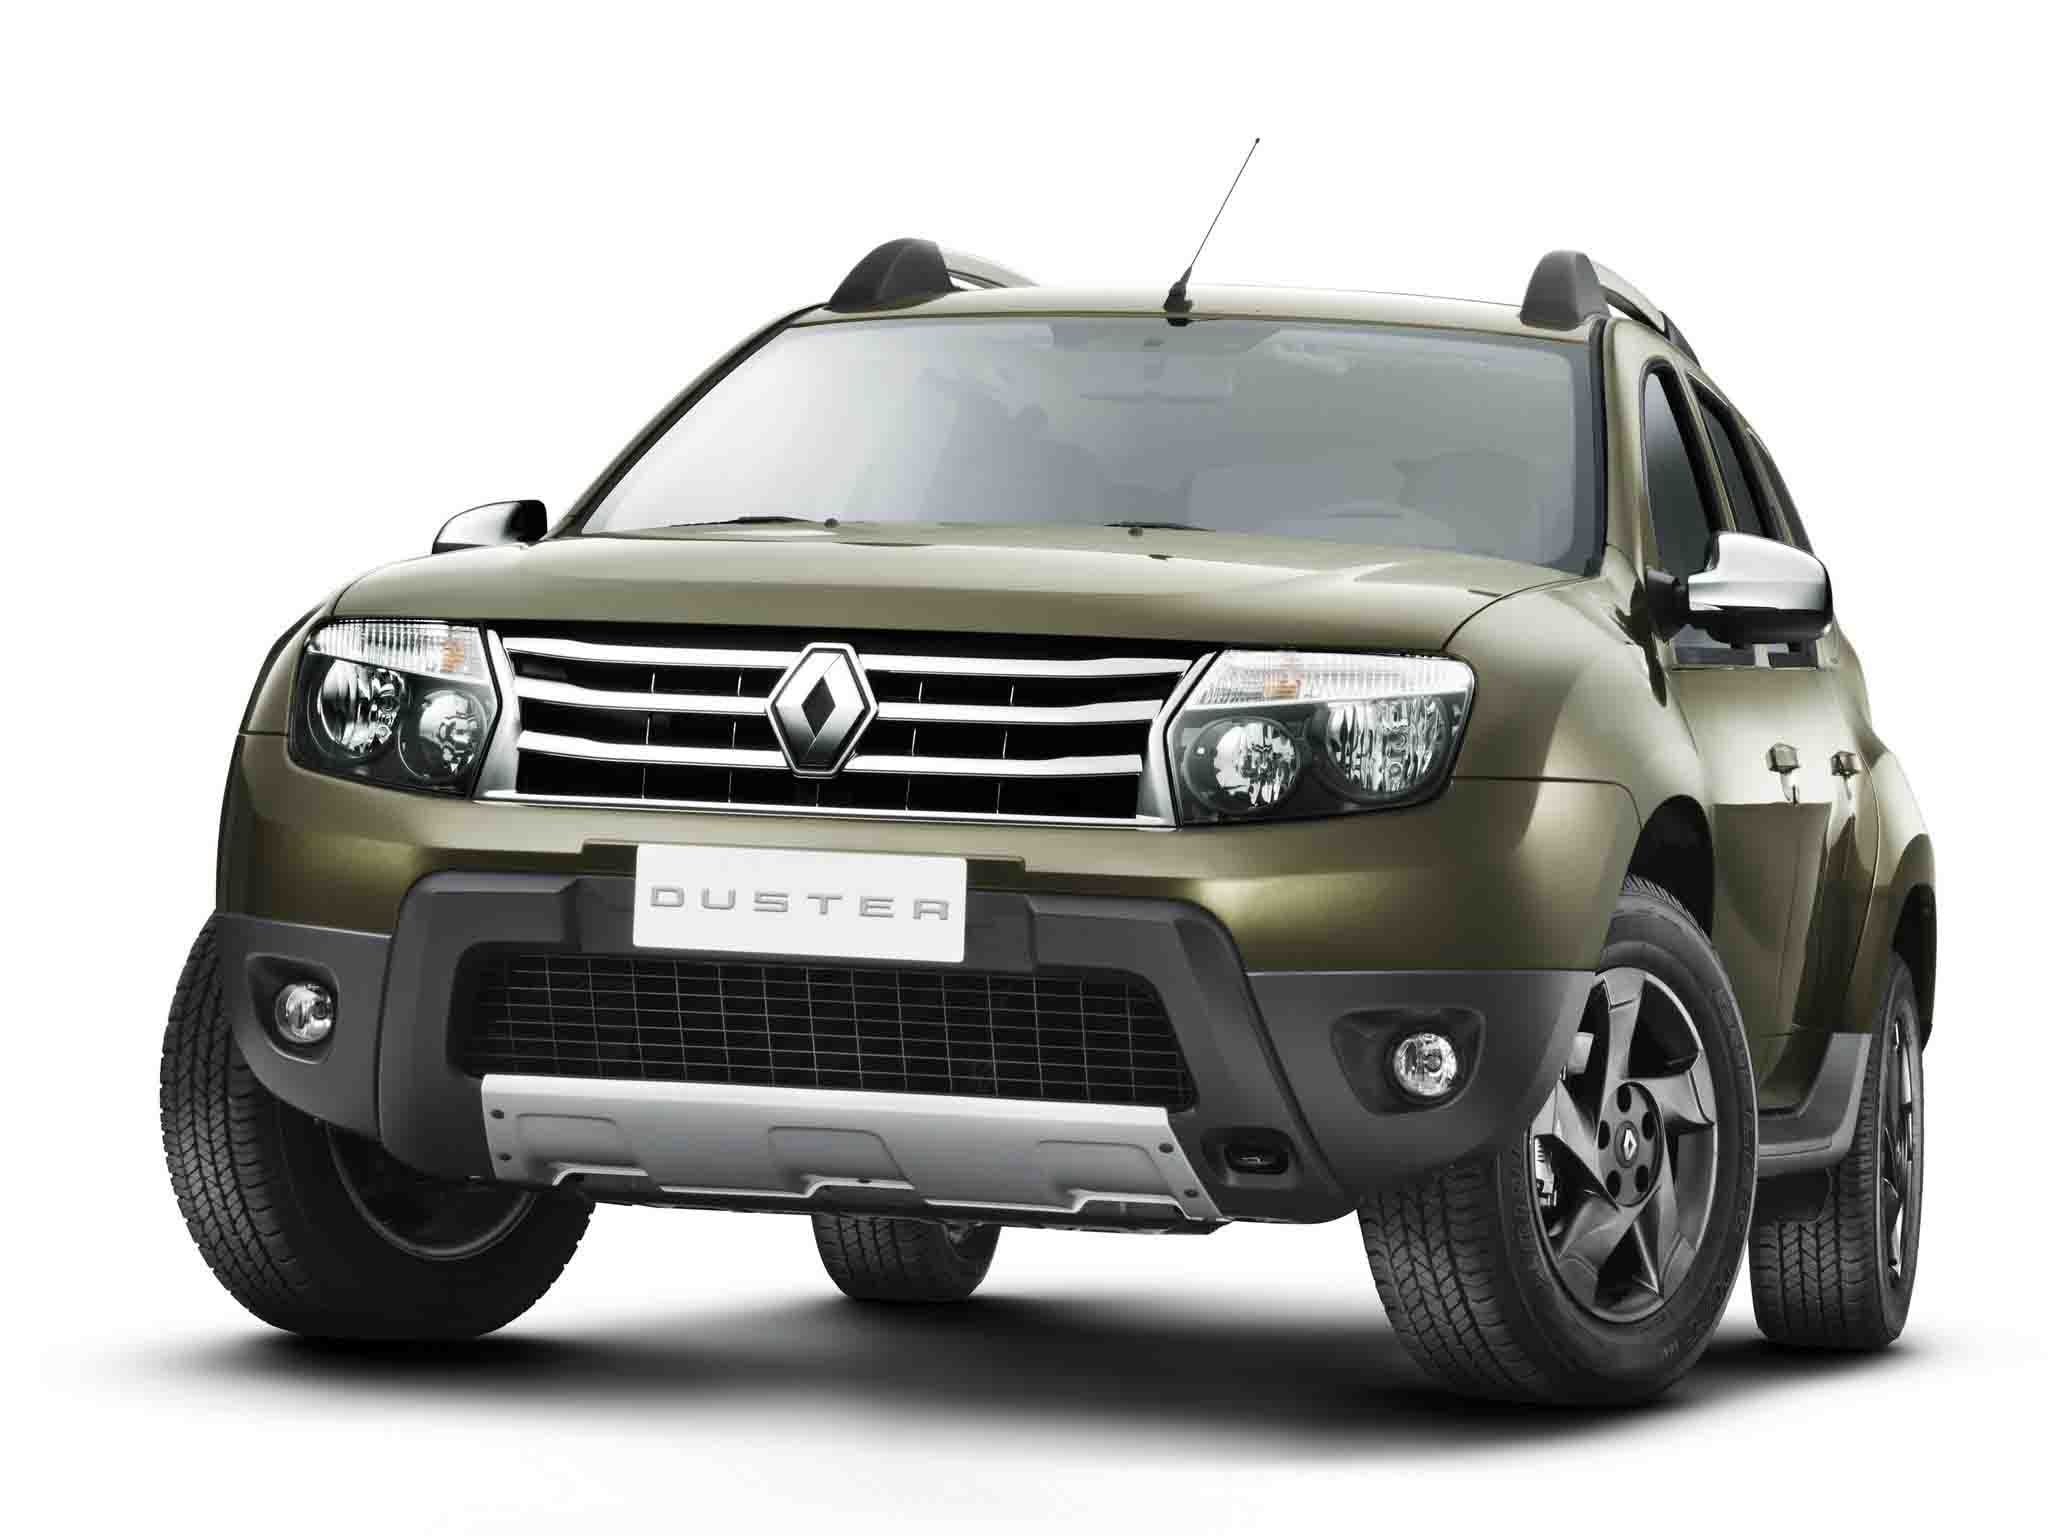 Renault DUSTER India, Price, Review, Images - Renault Cars